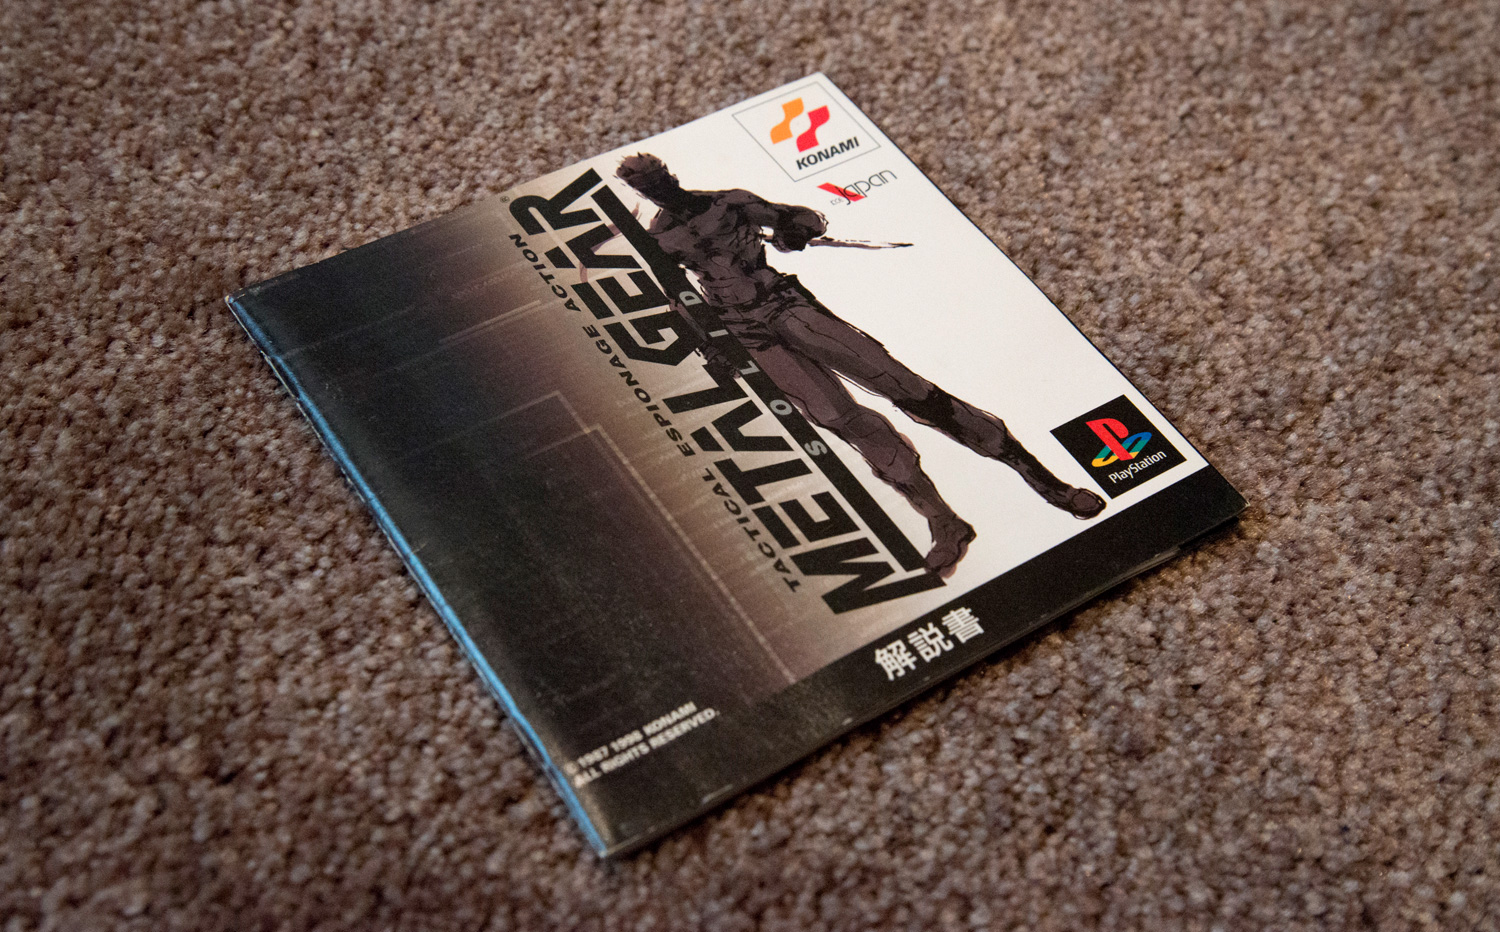 Metal-Gear-Solid-Premium-Package-Game-Manual